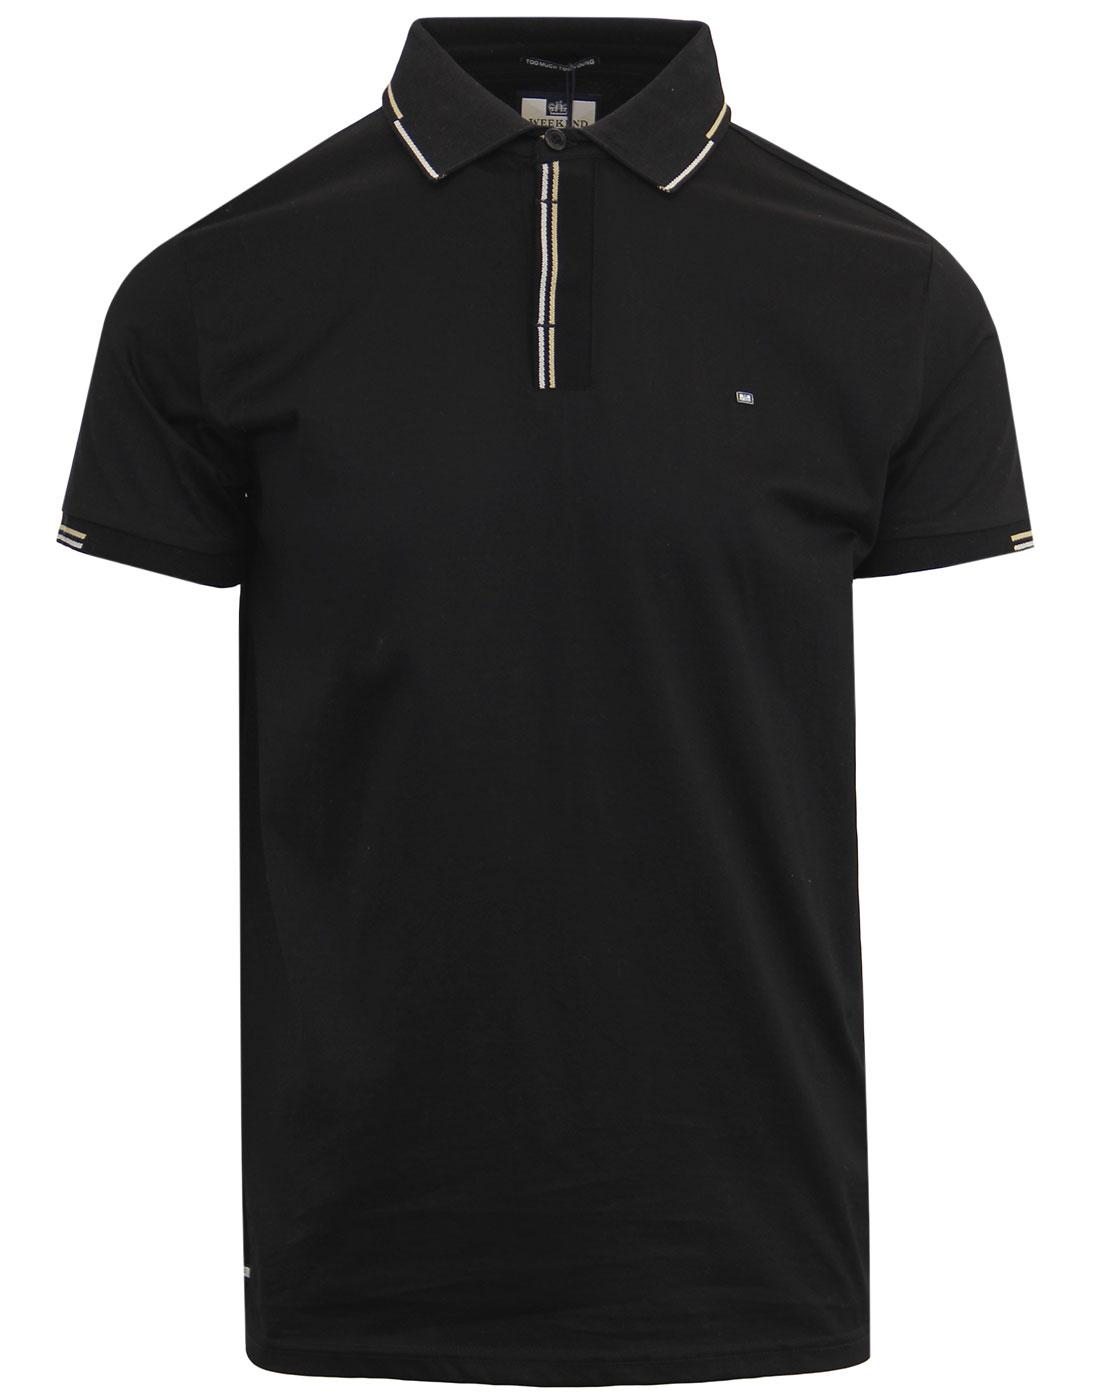 Cage WEEKEND OFFENDER Retro Mod Tipped Polo BLACK